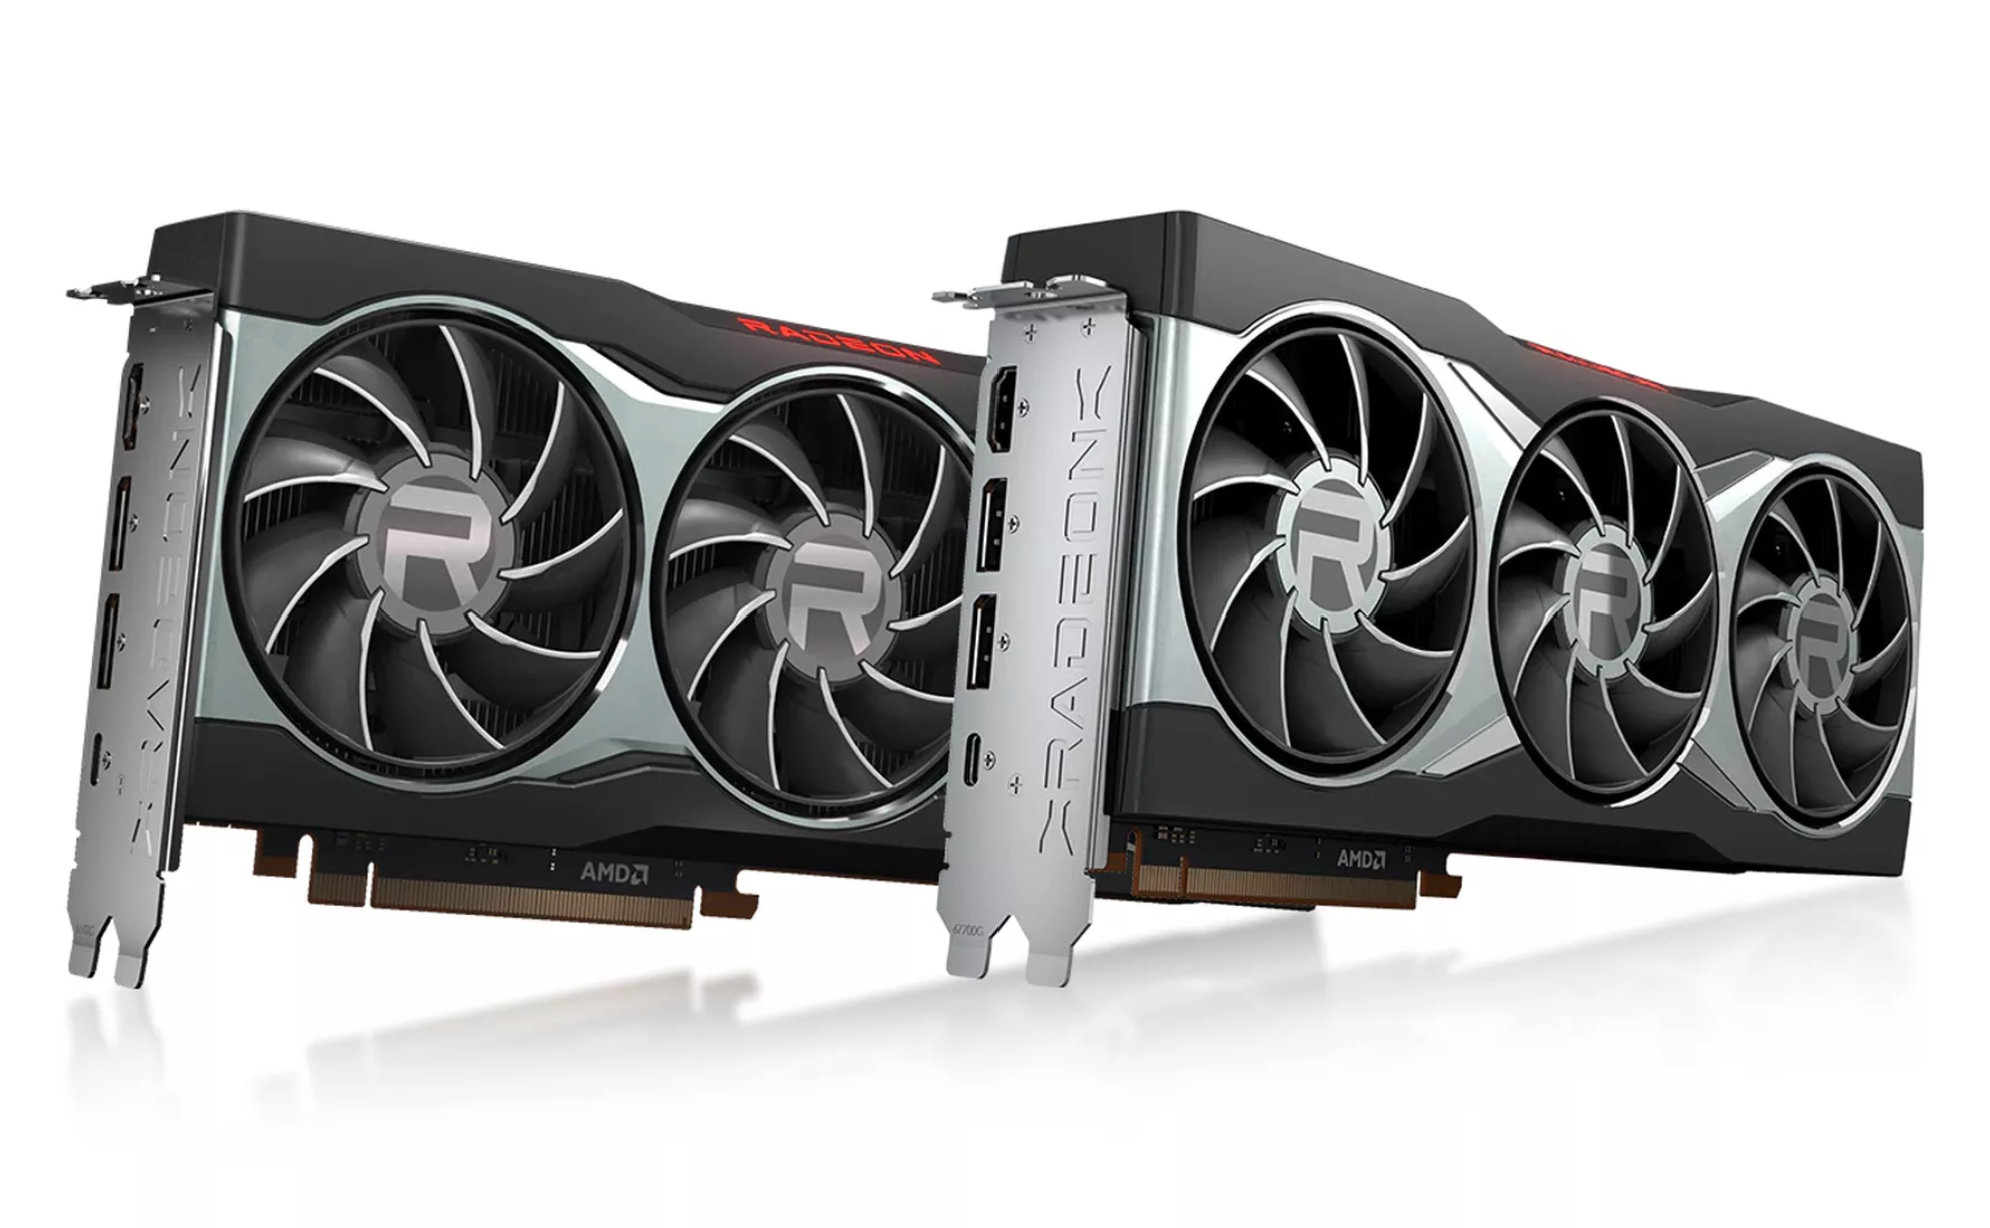 AMD releases Radeon RX 6800 XT series graphics cards